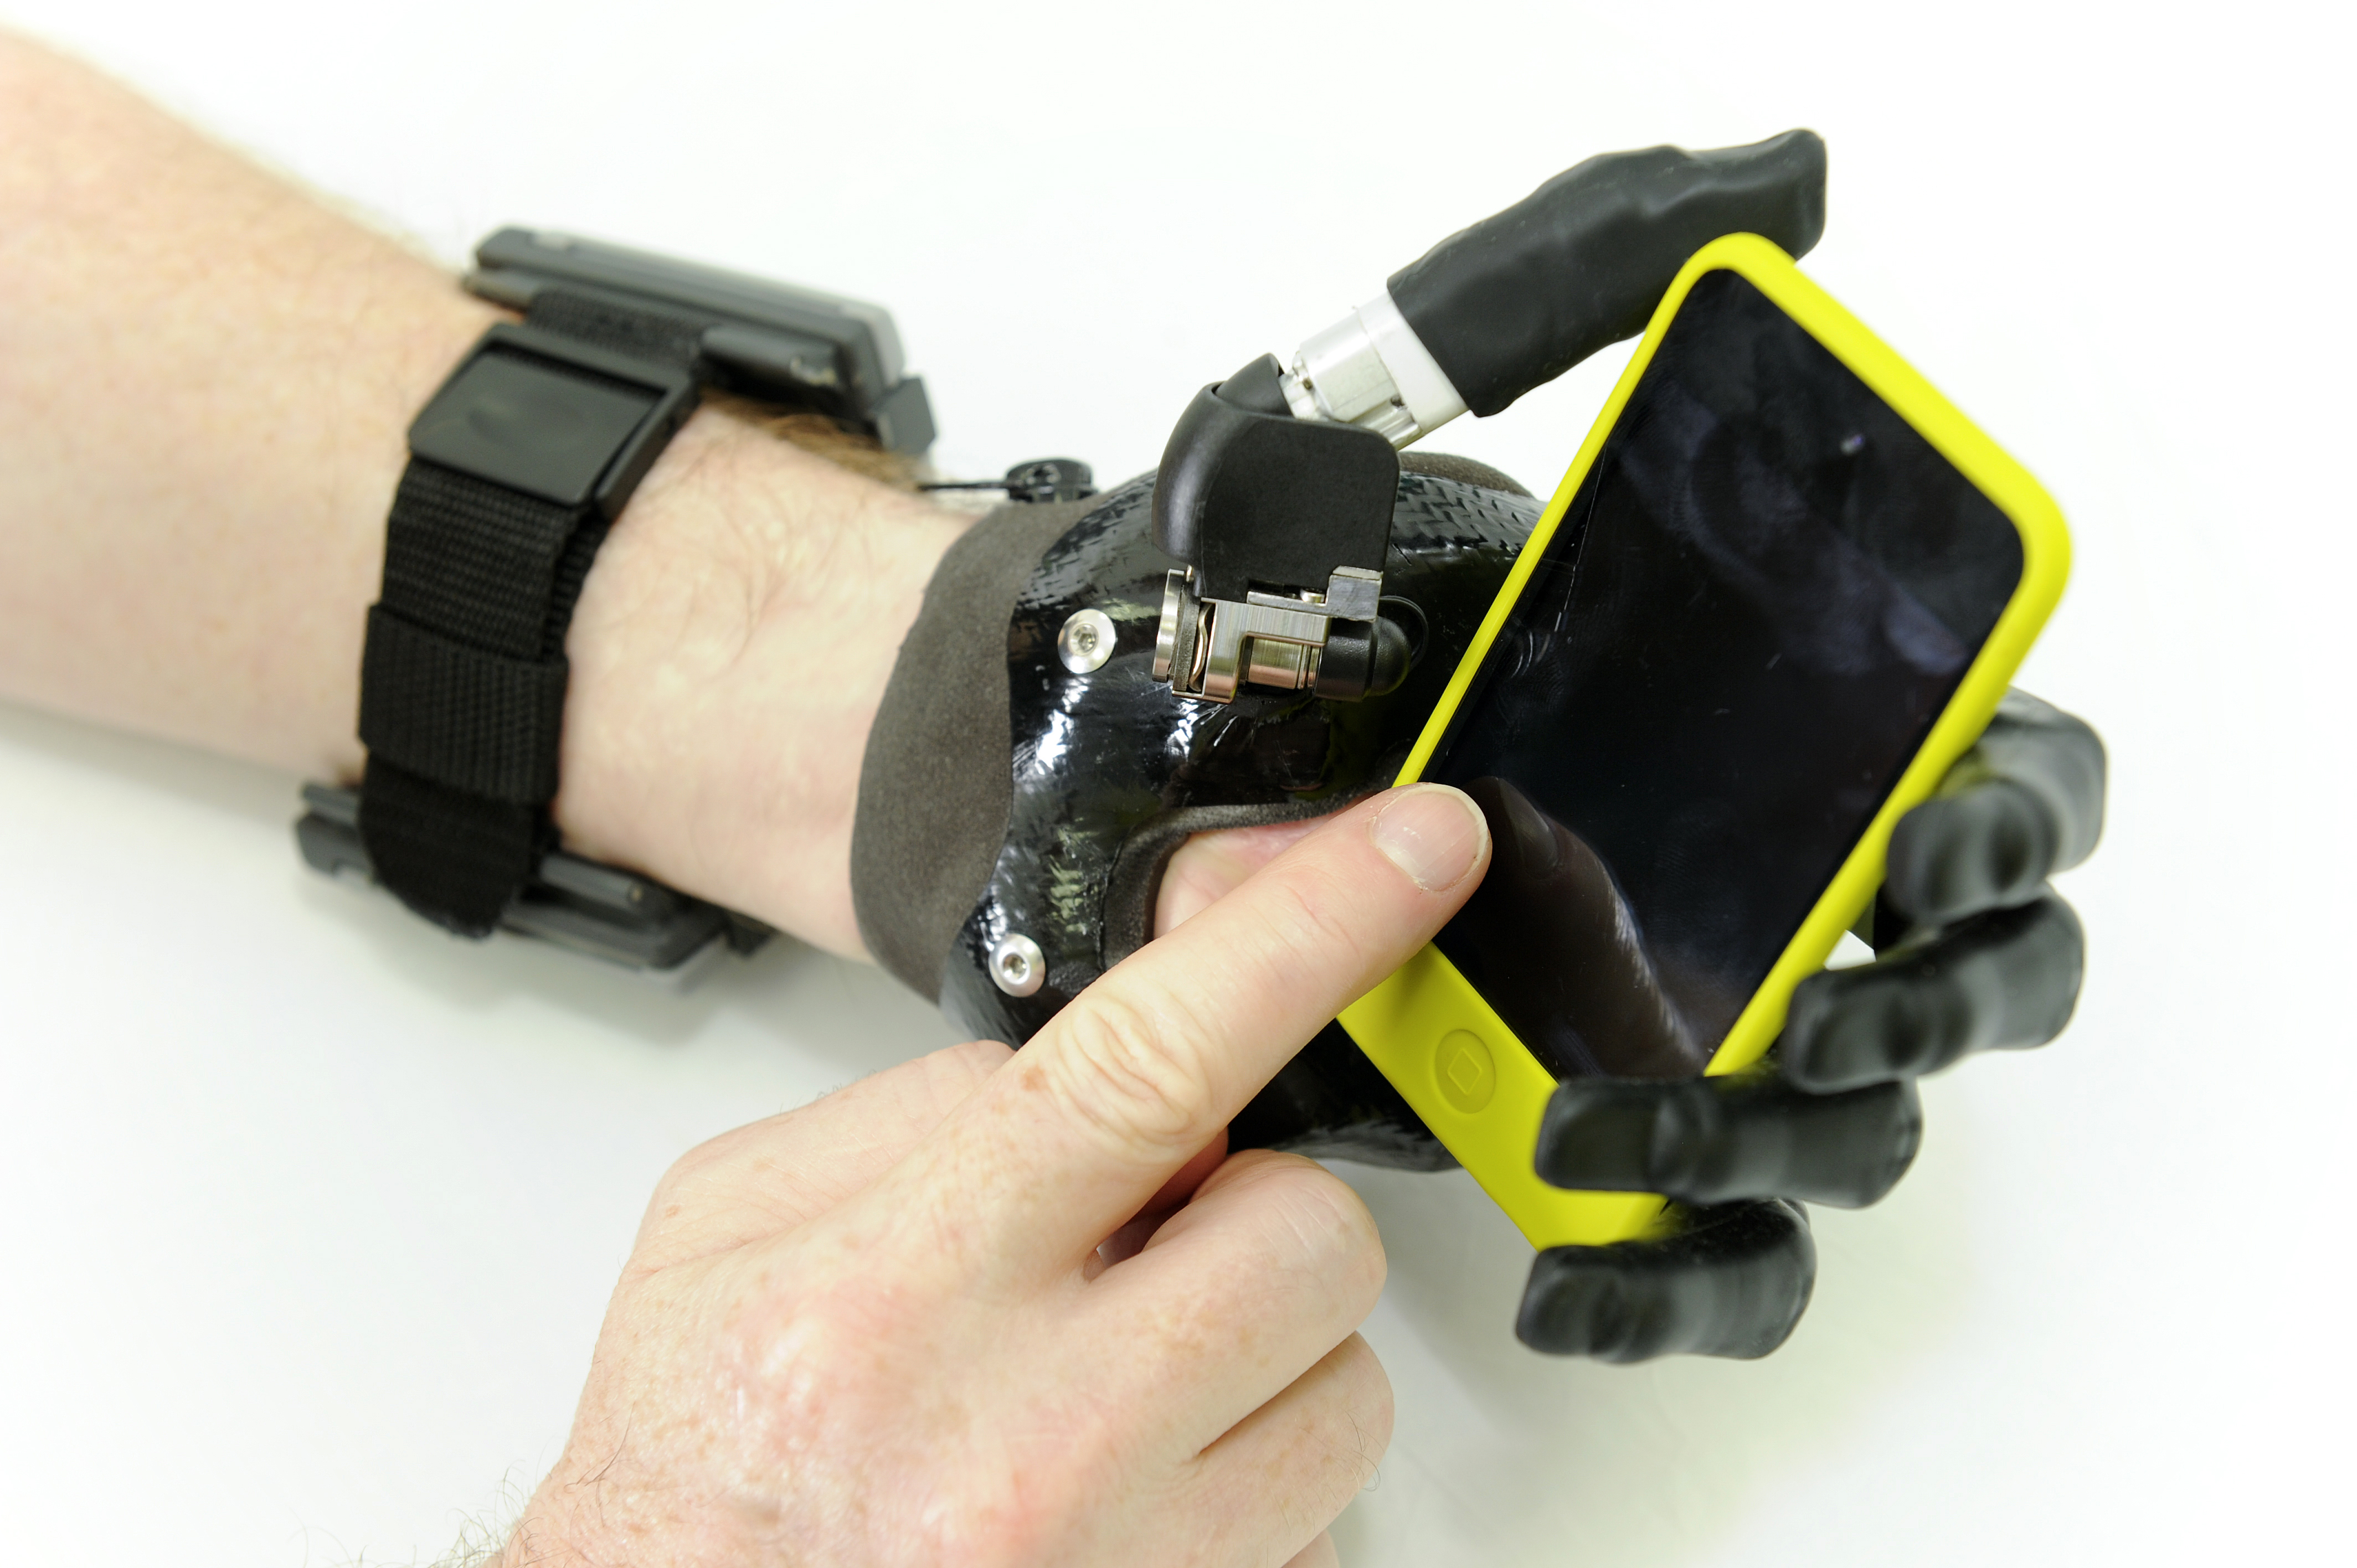 ilimb robotic limb with phone